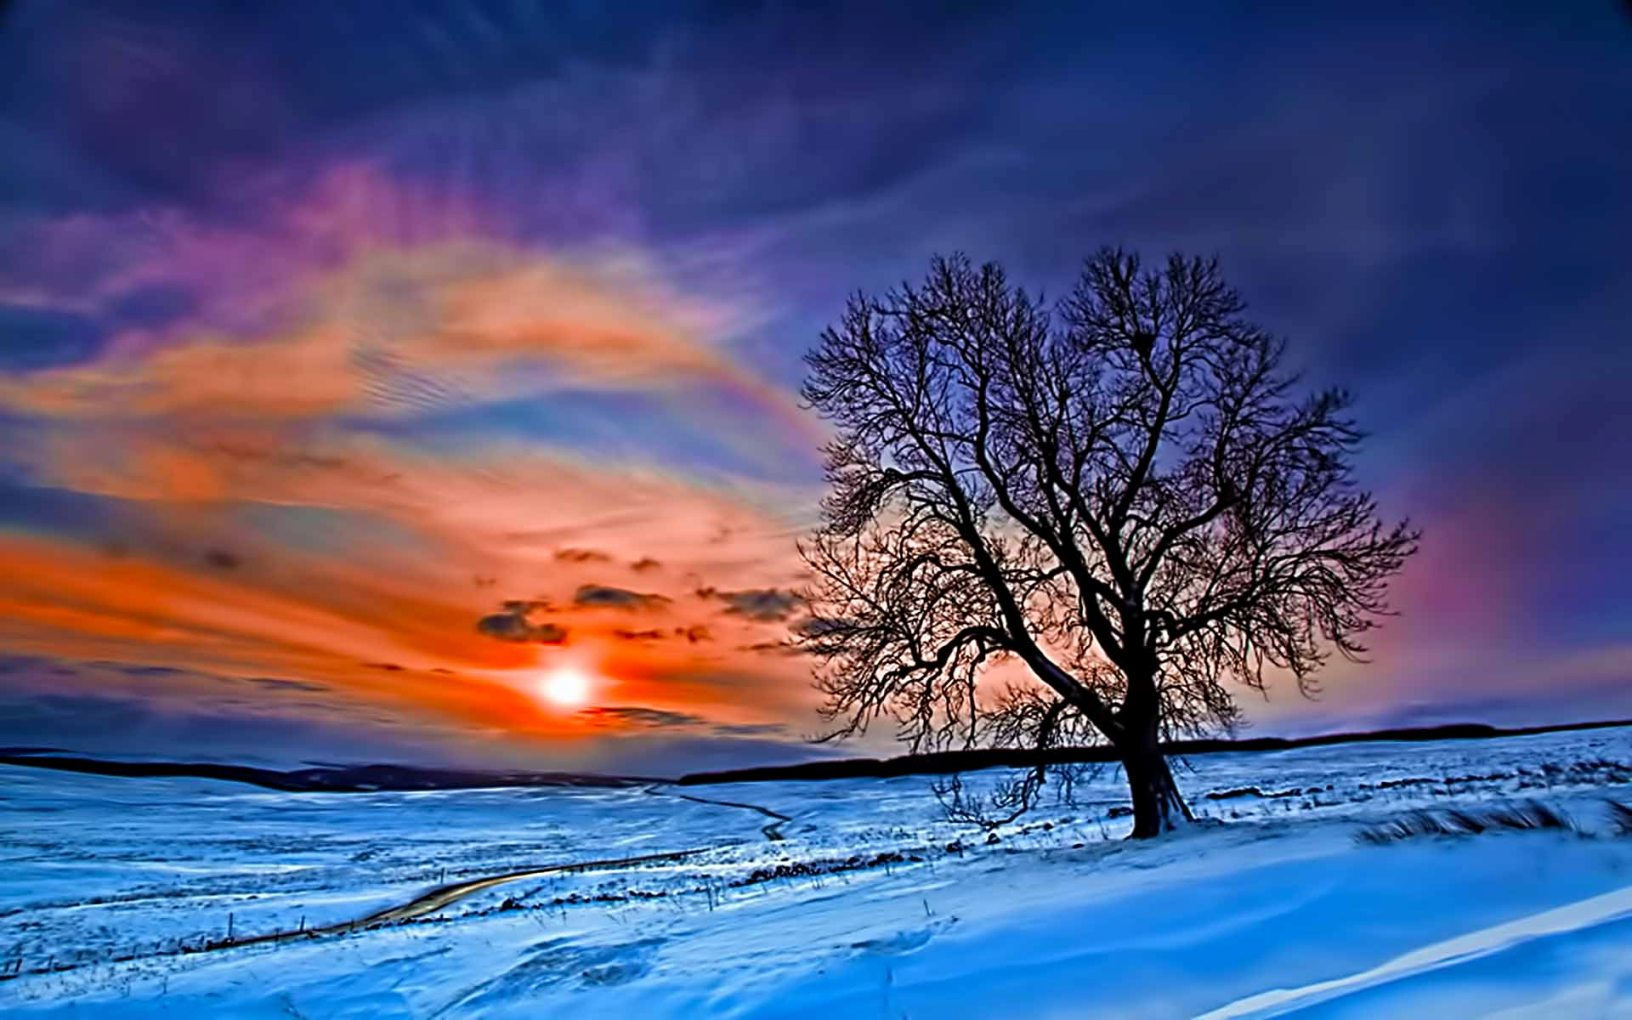 Beautiful Nature Winter Wallpaper wwwgalleryhipcom 1632x1020